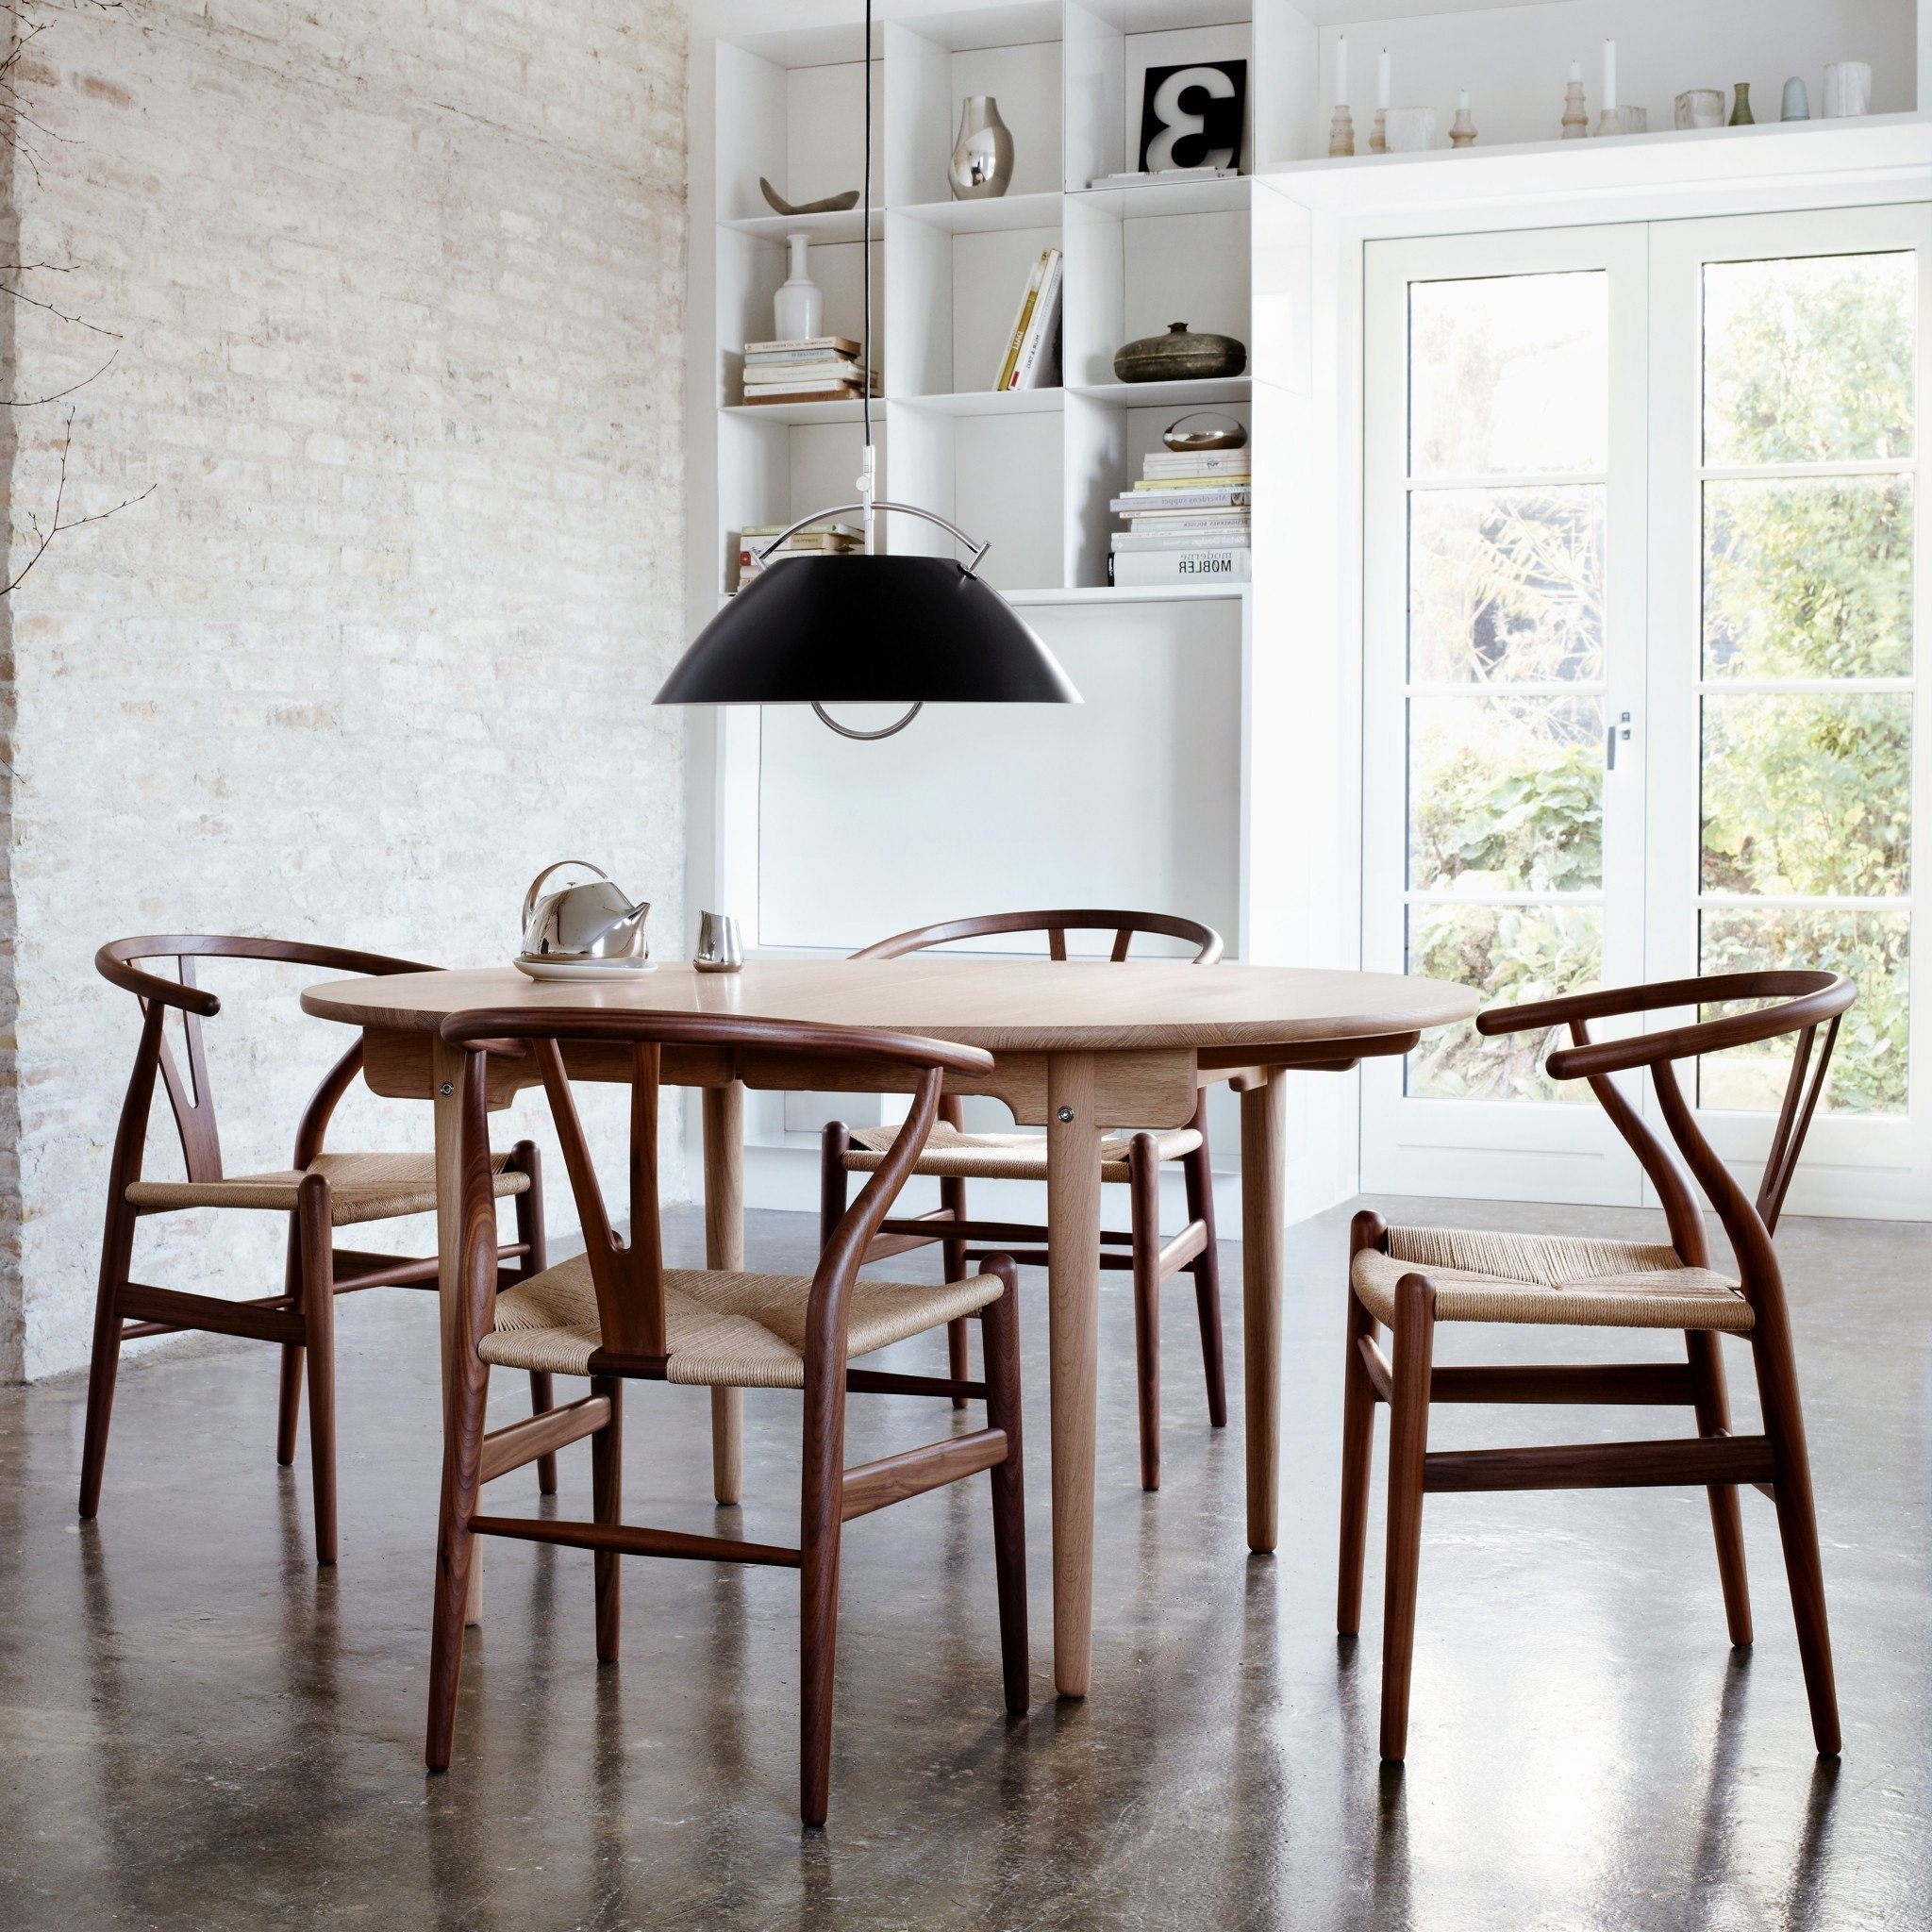 Ch327 Dining Tablecarl Hansen & Søn — Haus® Throughout Recent London Dining Tables (View 6 of 25)